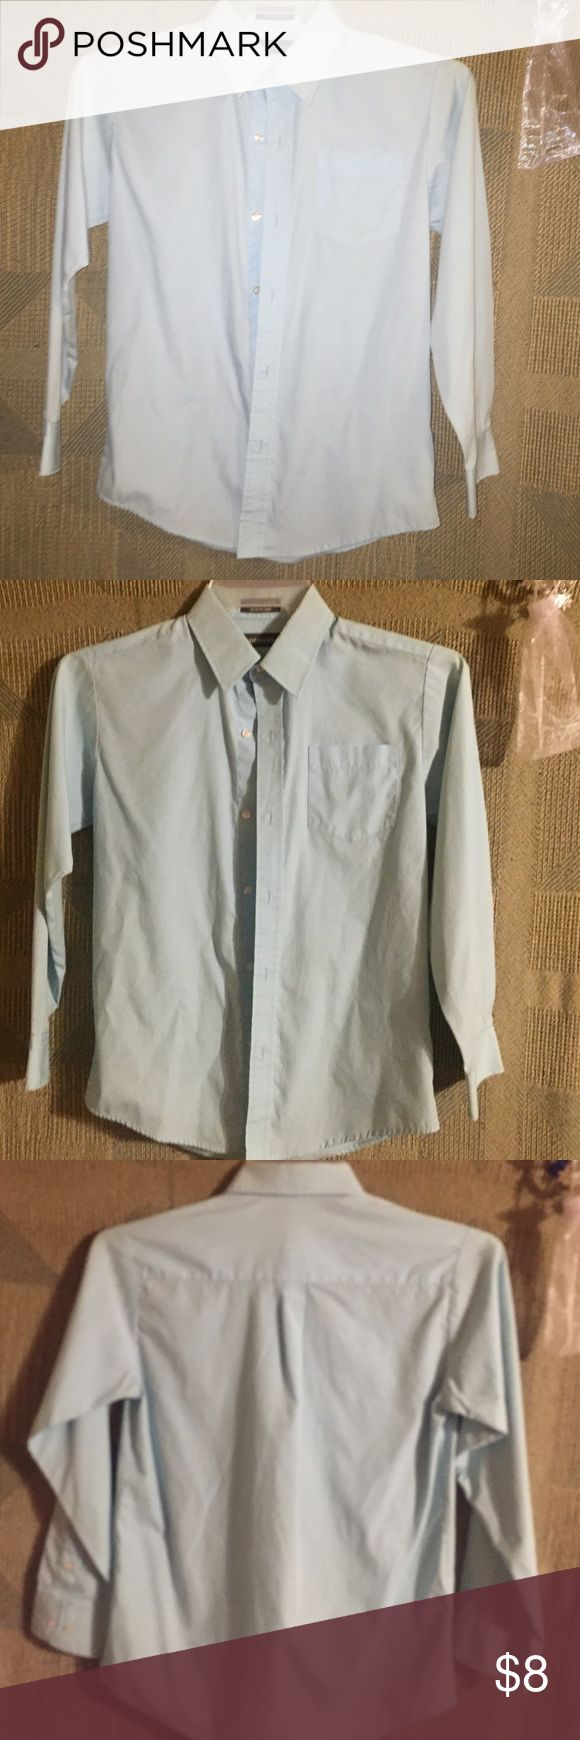 Boy 14 Dockers butting up long sleeved blue shirt Light blue button up,long sleeved shirt from Dockers. Boys size 14 good condition, my son has just outgrown it Dockers Shirts & Tops Button Down Shirts